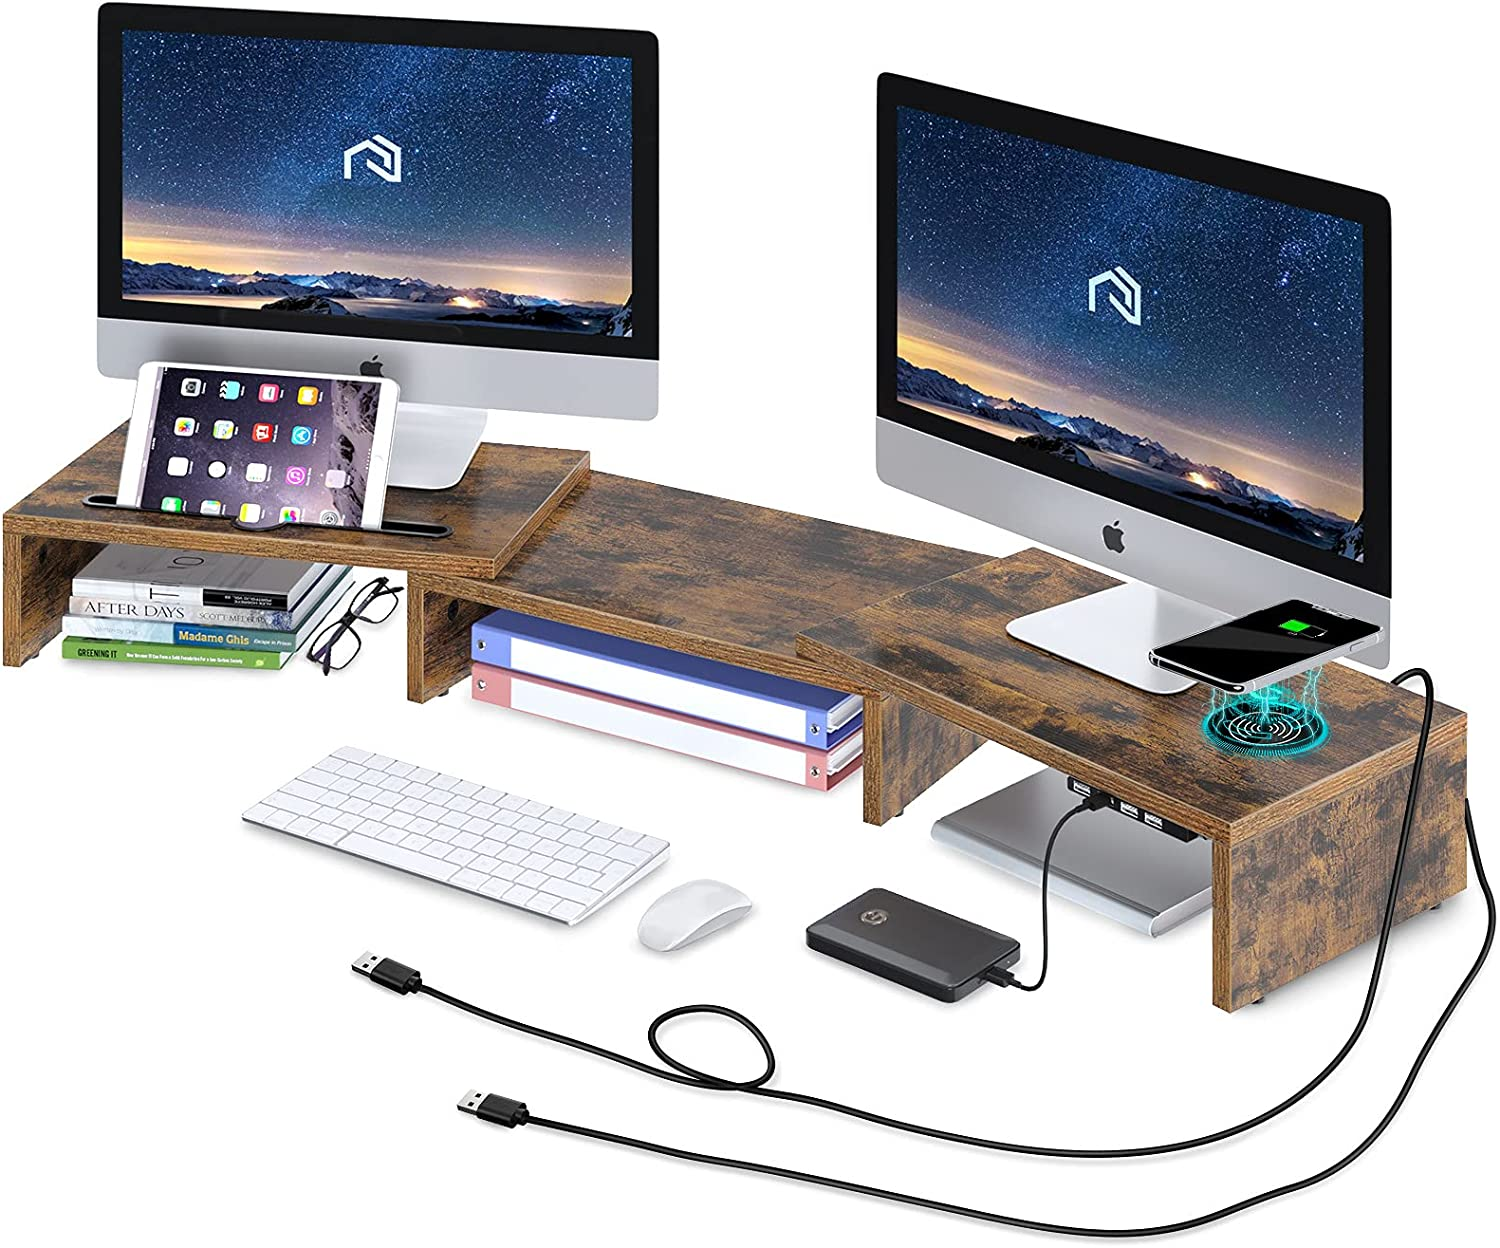 Rolanstar Monitor Stand Riser with Wireless Charging and 4 USB Ports Support Data Transfer and Charging, Dual Monitor Computer Stand, Adjustable Desk Organizer Stand for Laptop/Computer, Rustic Brown